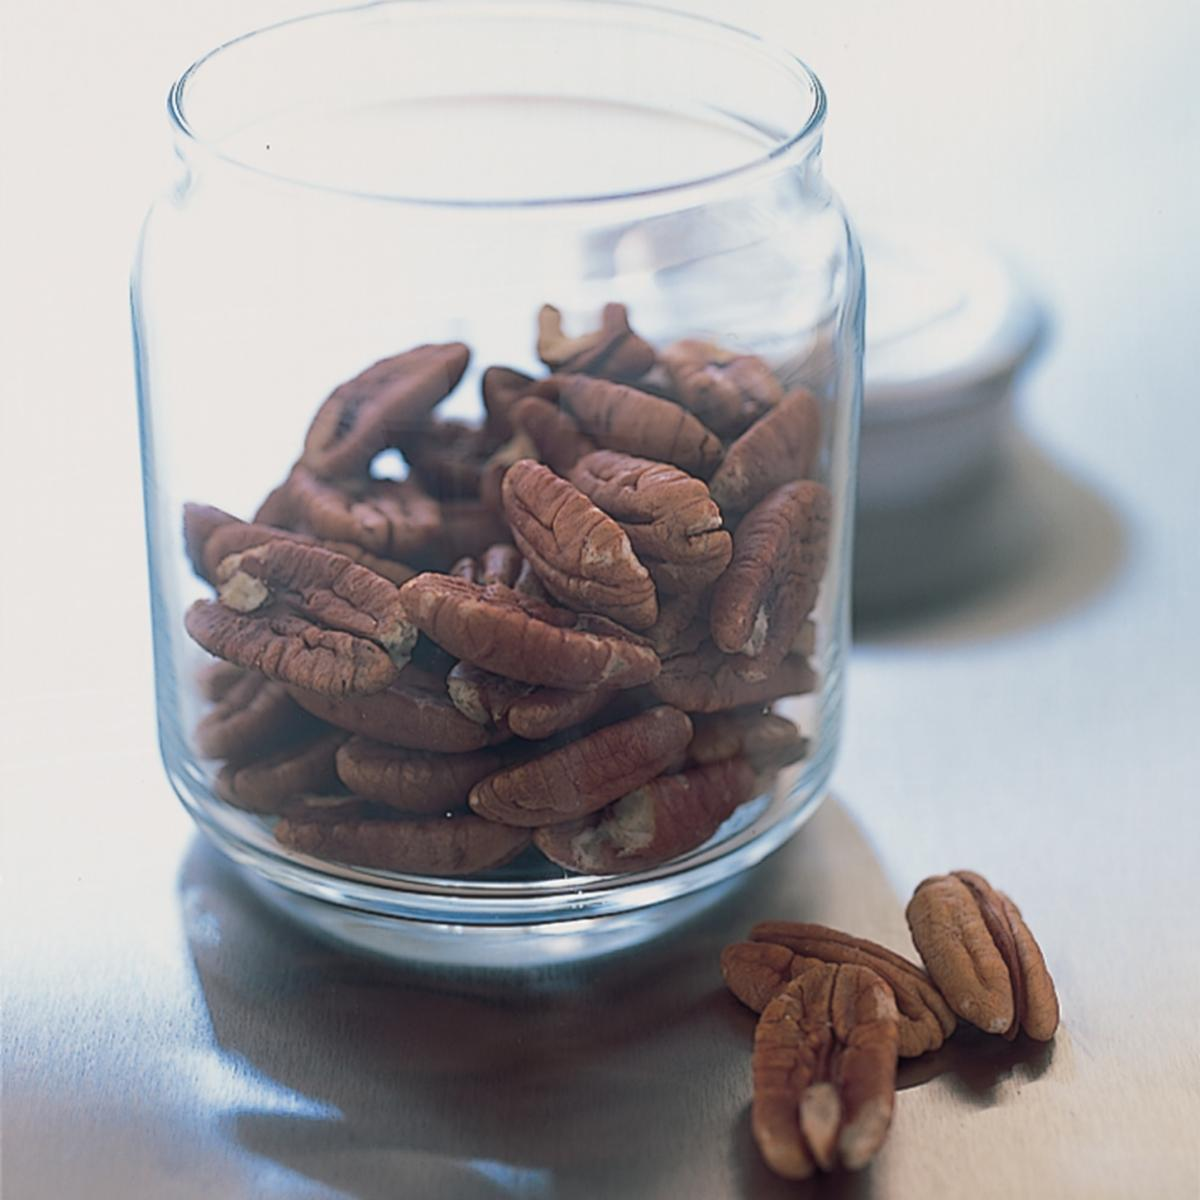 Ingredient baking pecans